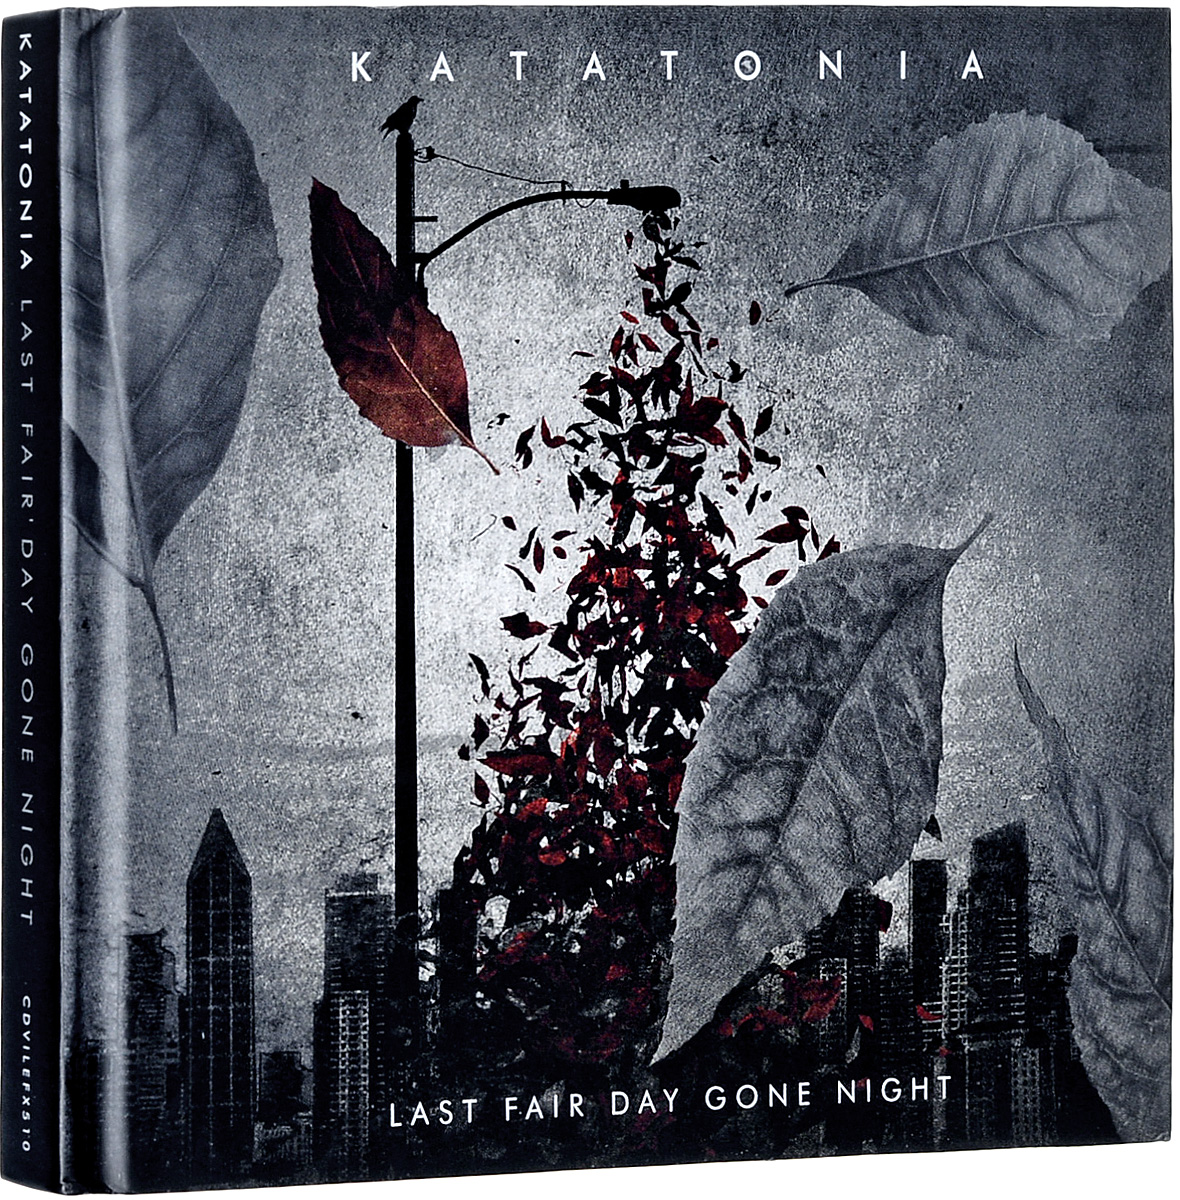 Katatonia: Last Fair Day Gone Night (2 DVD + 2 CD) блокада 2 dvd